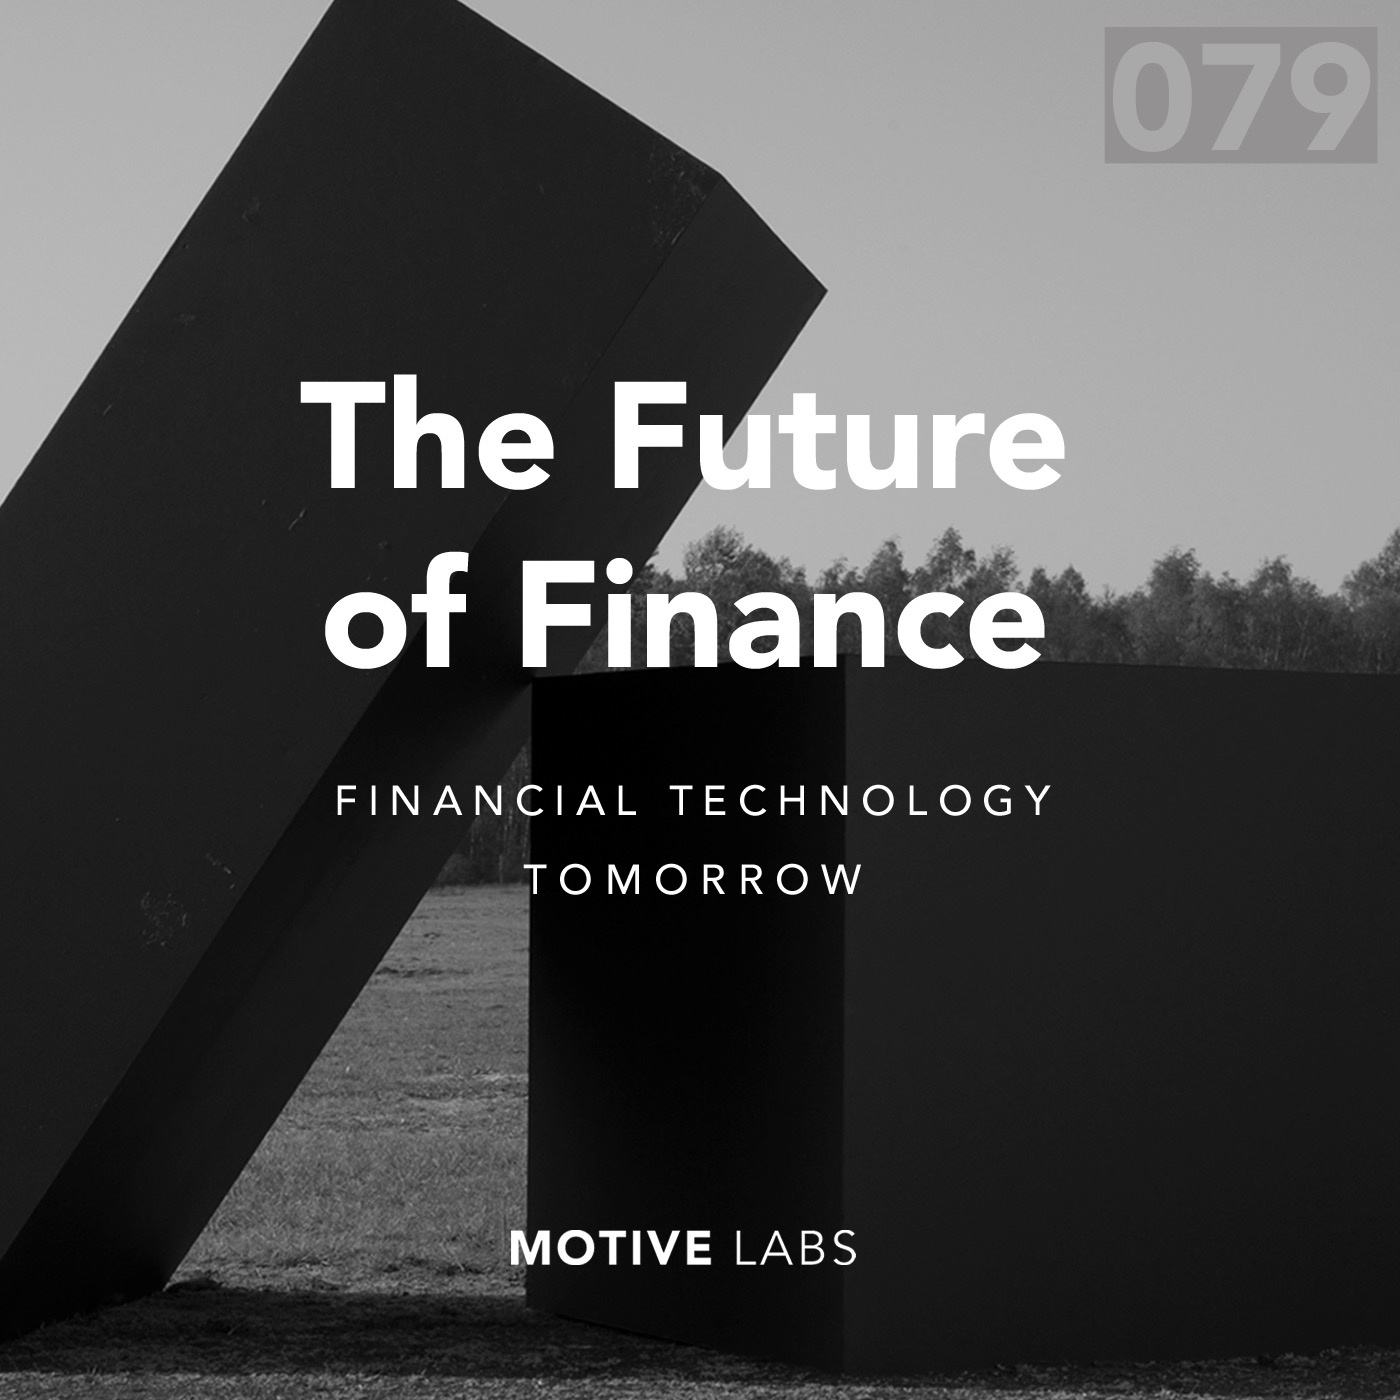 079 - Alex Manson, upbringing a globalized banking innovation philosophy